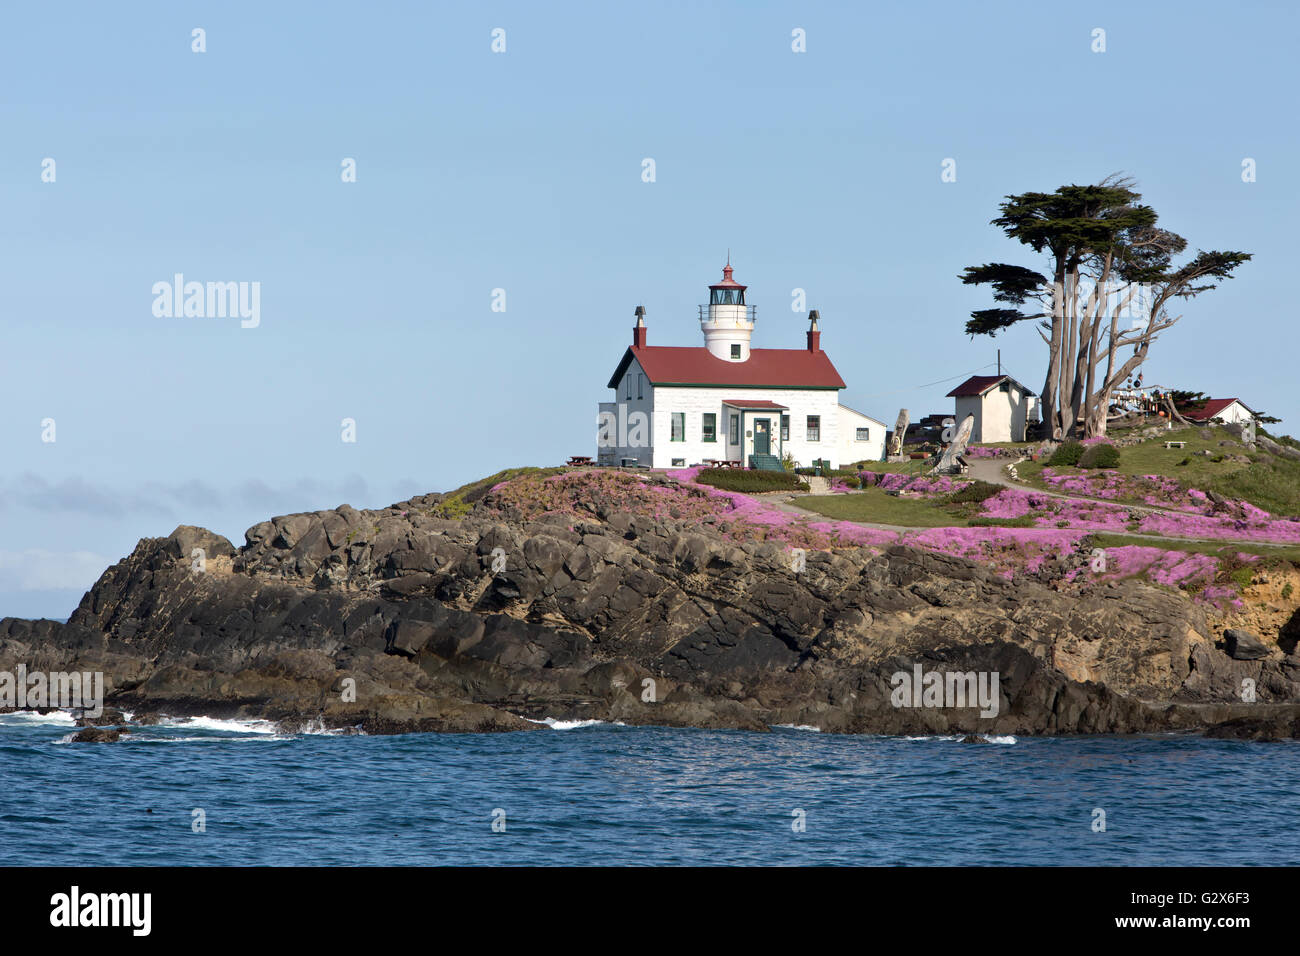 Battery Point Lighthouse,  Sitka Spruce,  Del Norte County. - Stock Image